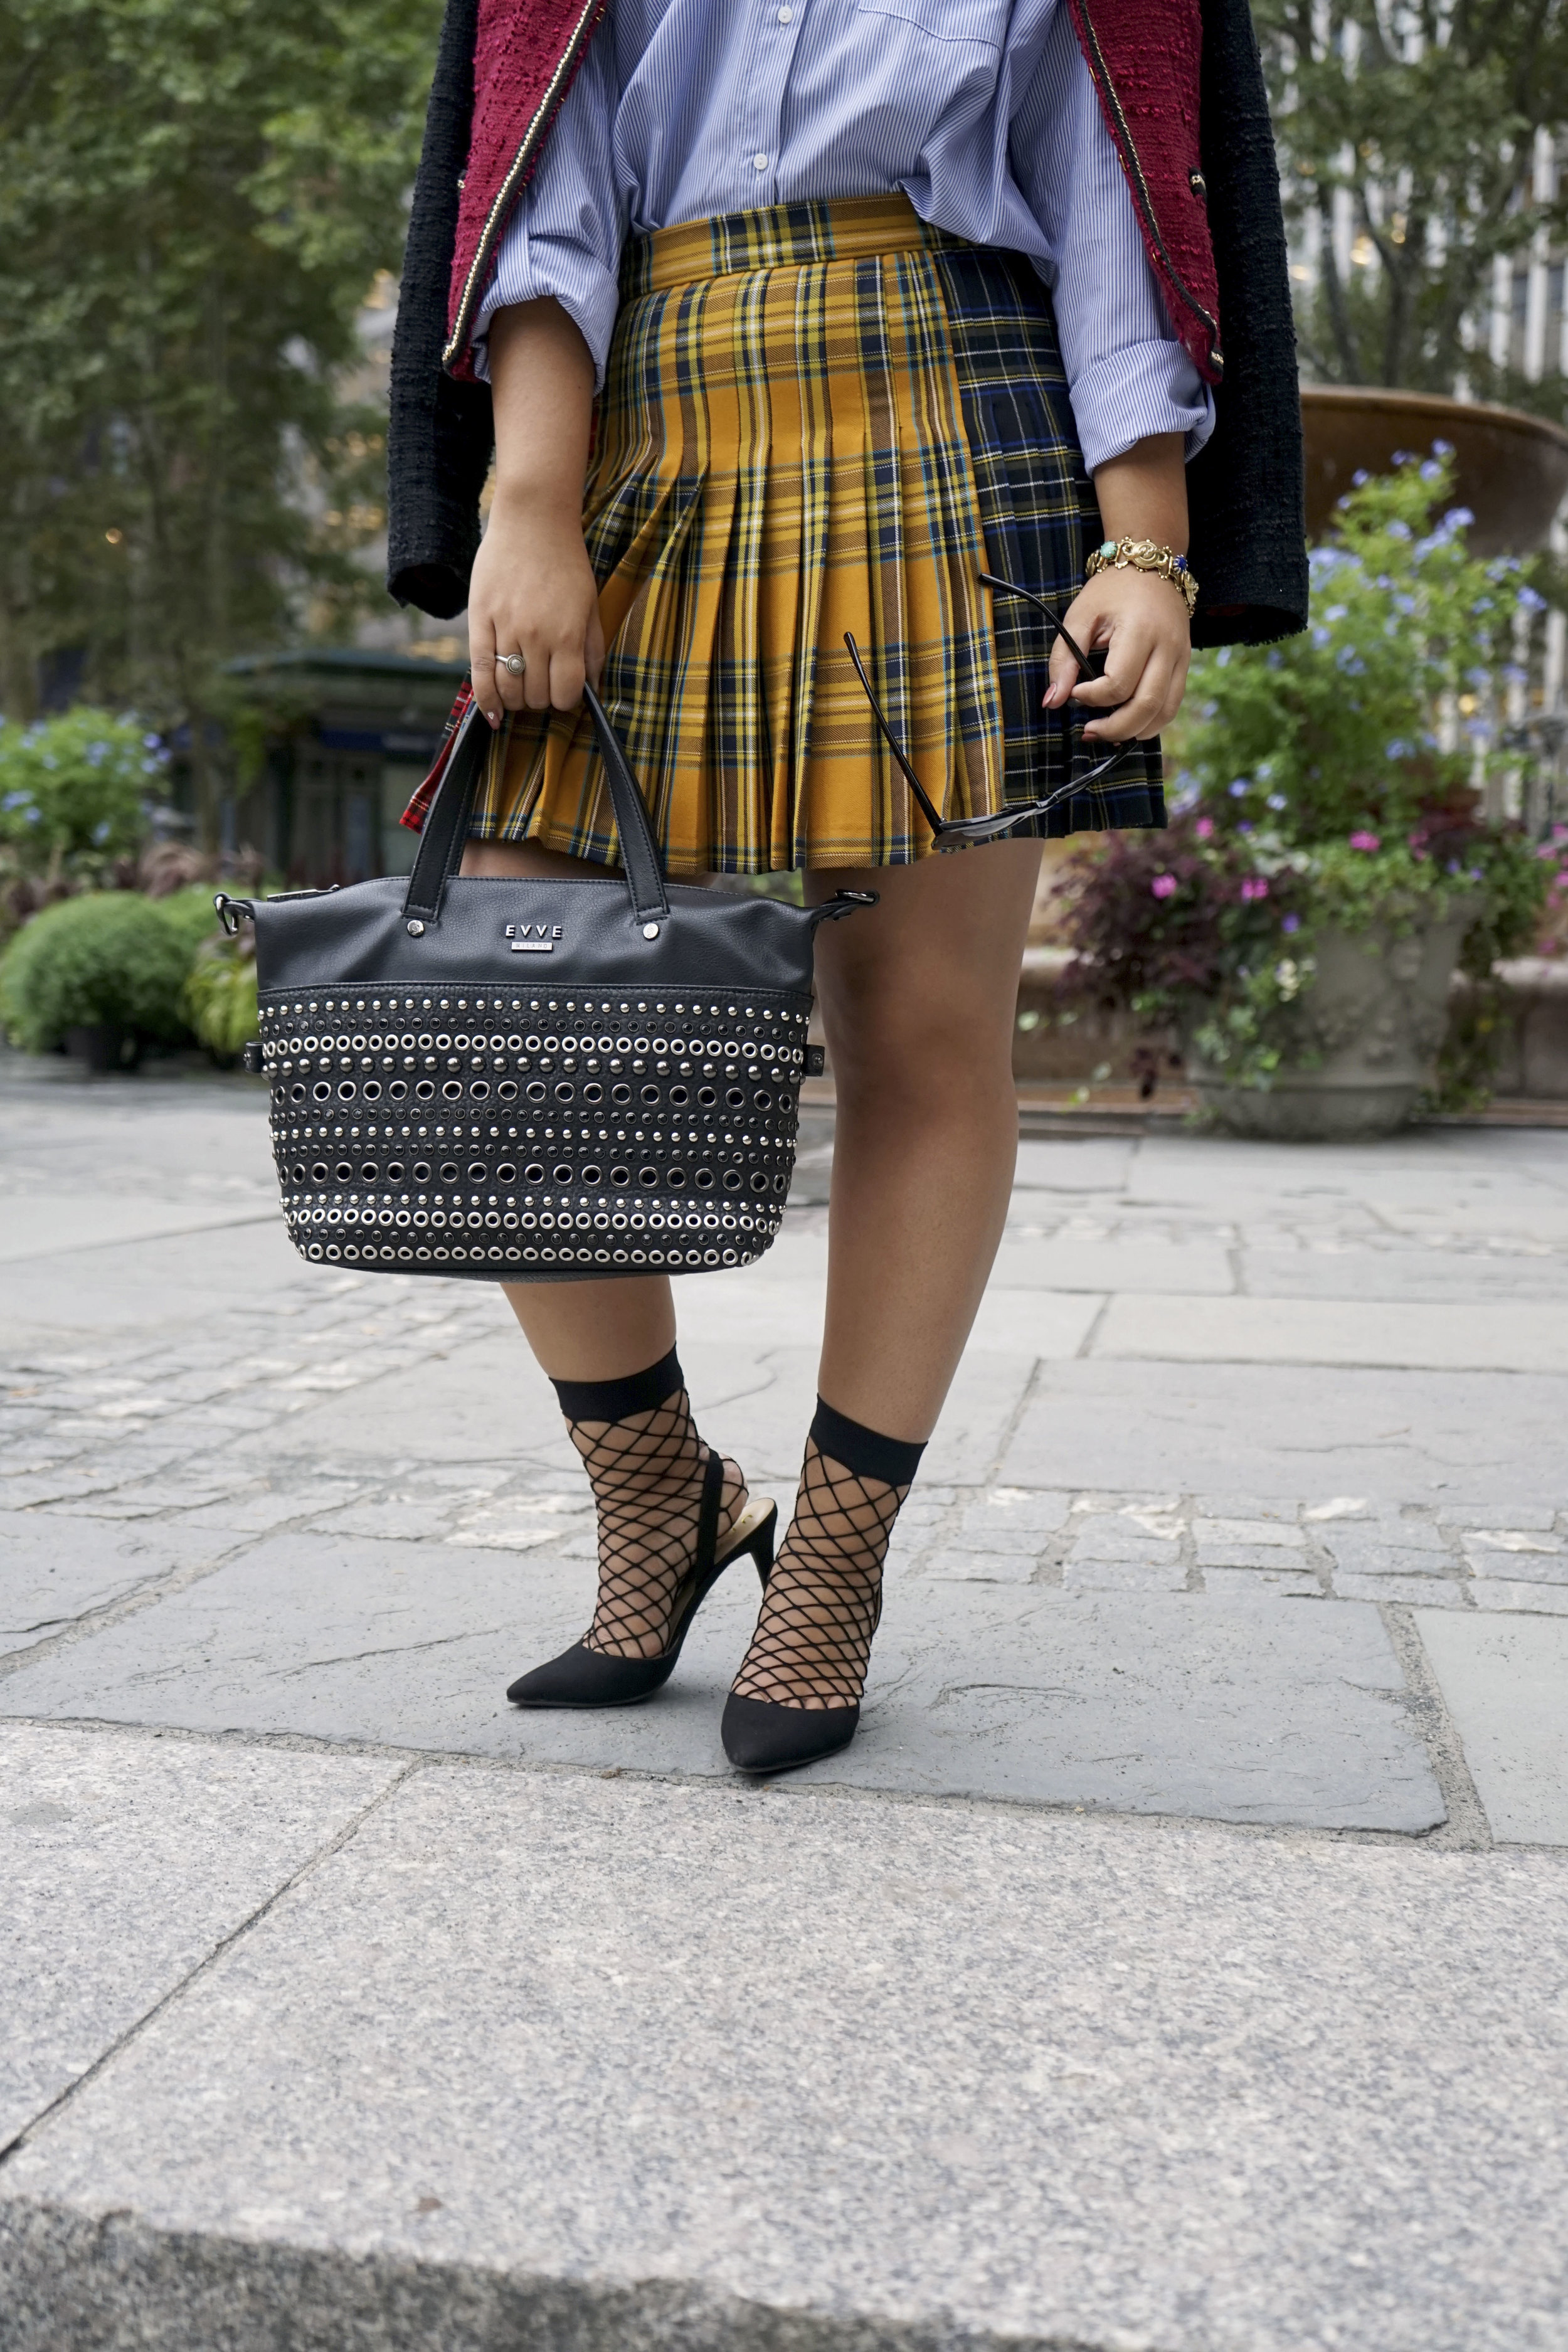 Krity S x Fall Trends x Preppy Plaid 11.jpg